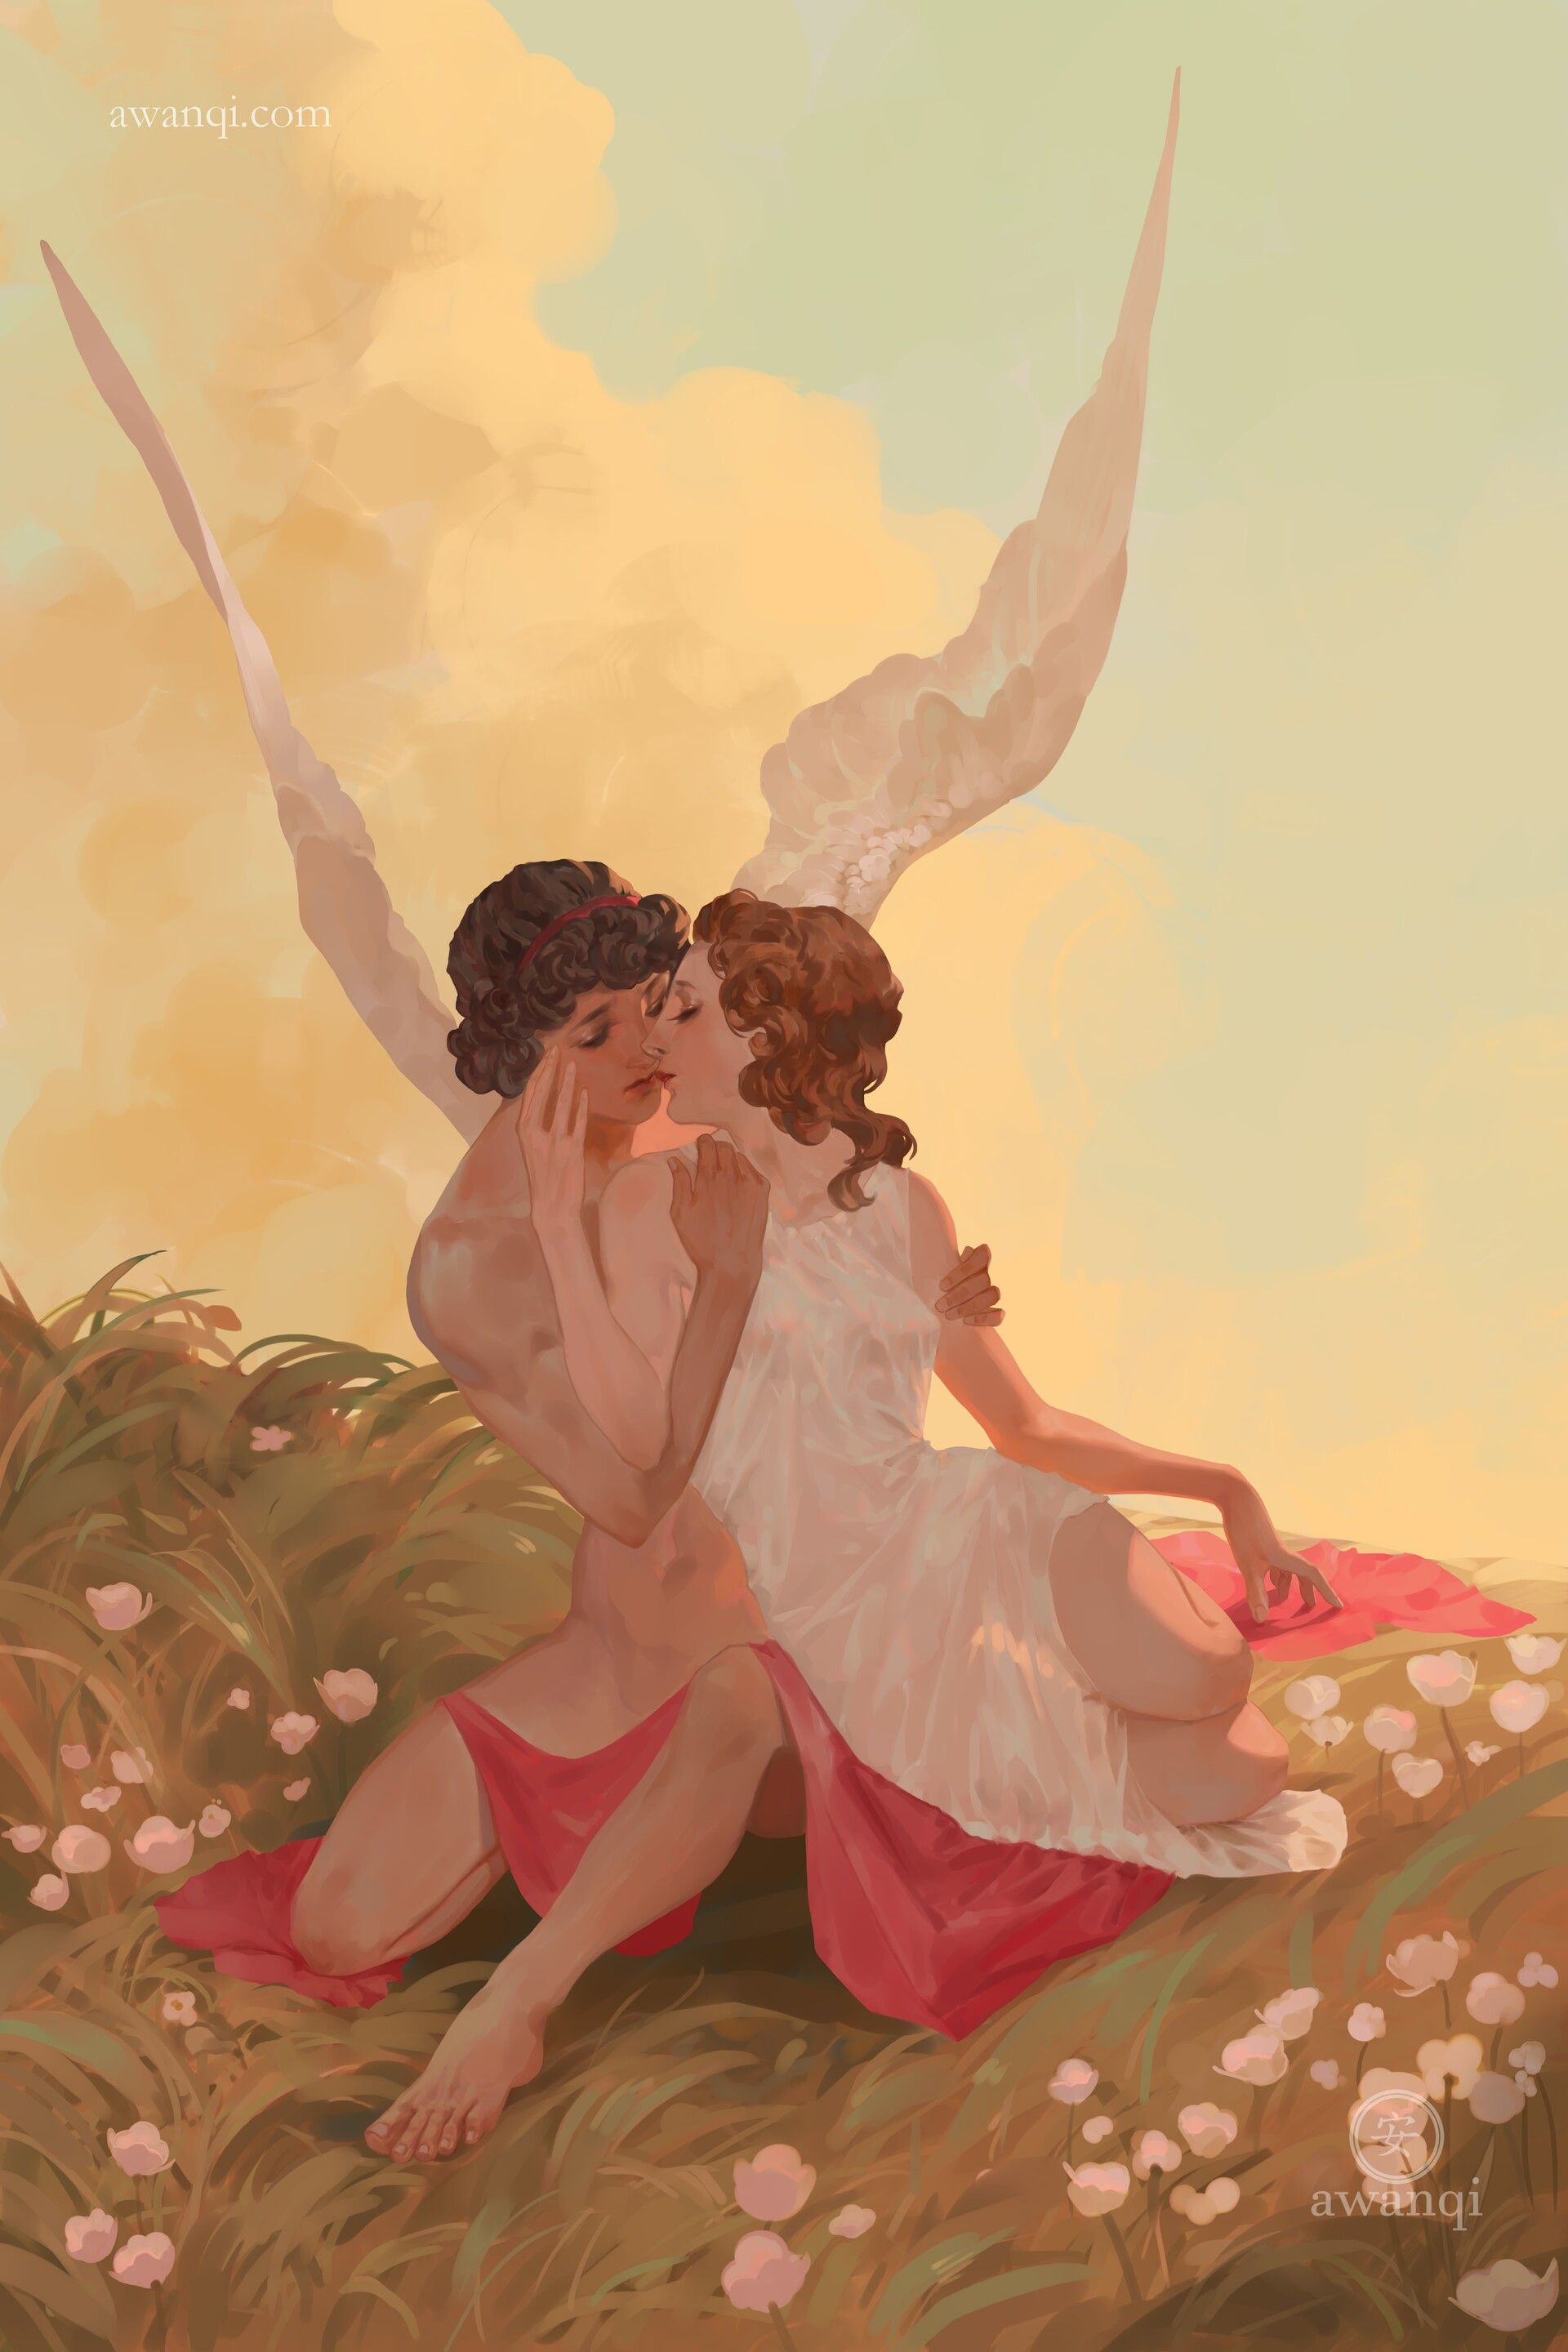 Artstation Cupid And Psyche Aw Anqi Greek Mythology Art Mythology Art Cupid And Psyche